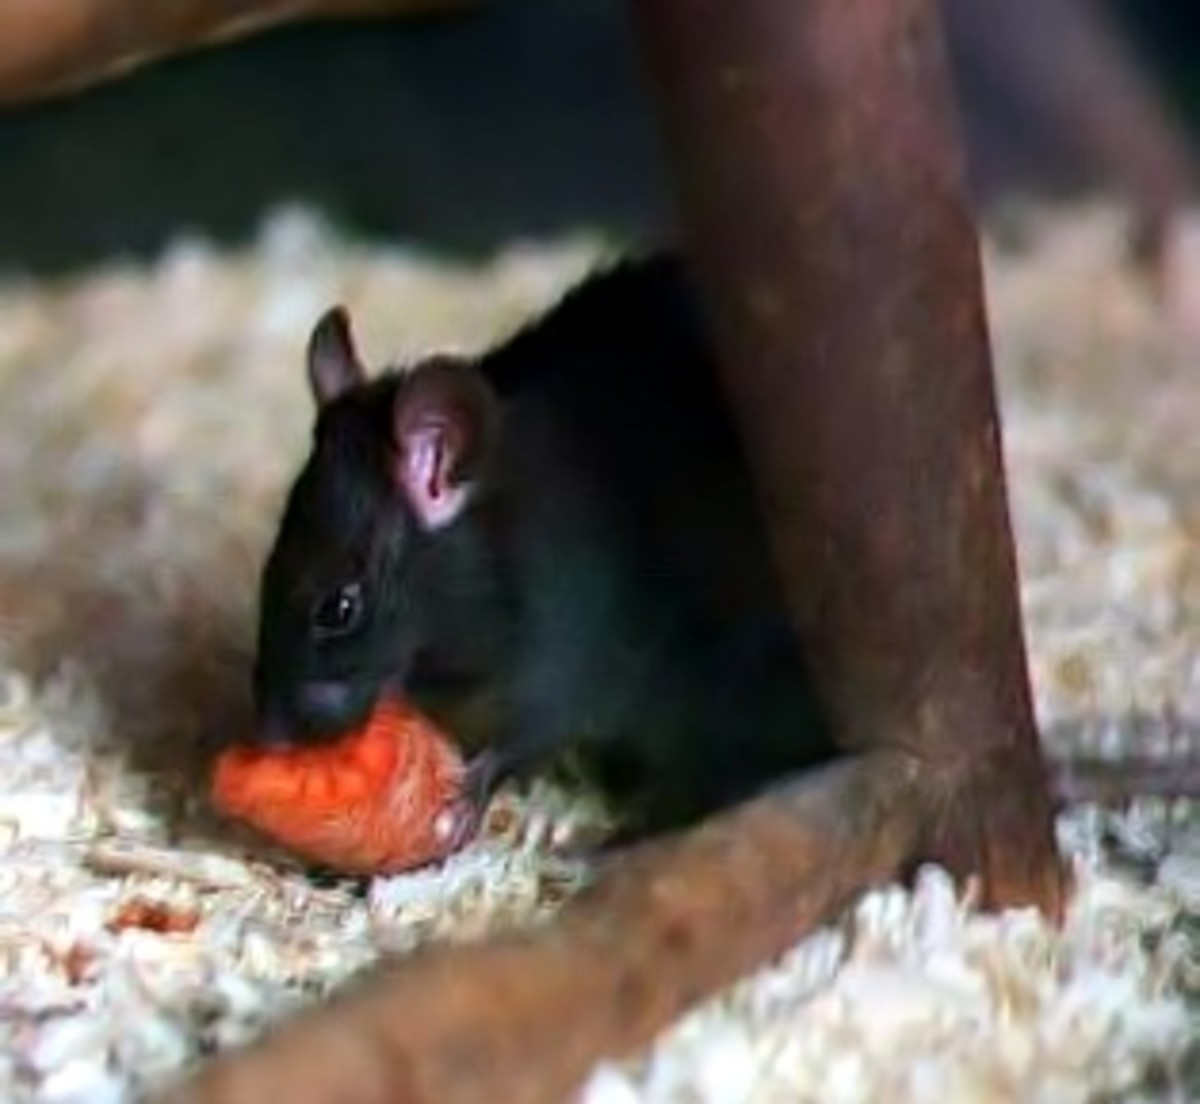 Rodents like black rats will swarm into abandoned shops and houses and experience a temporary population boom due to the excess of food.